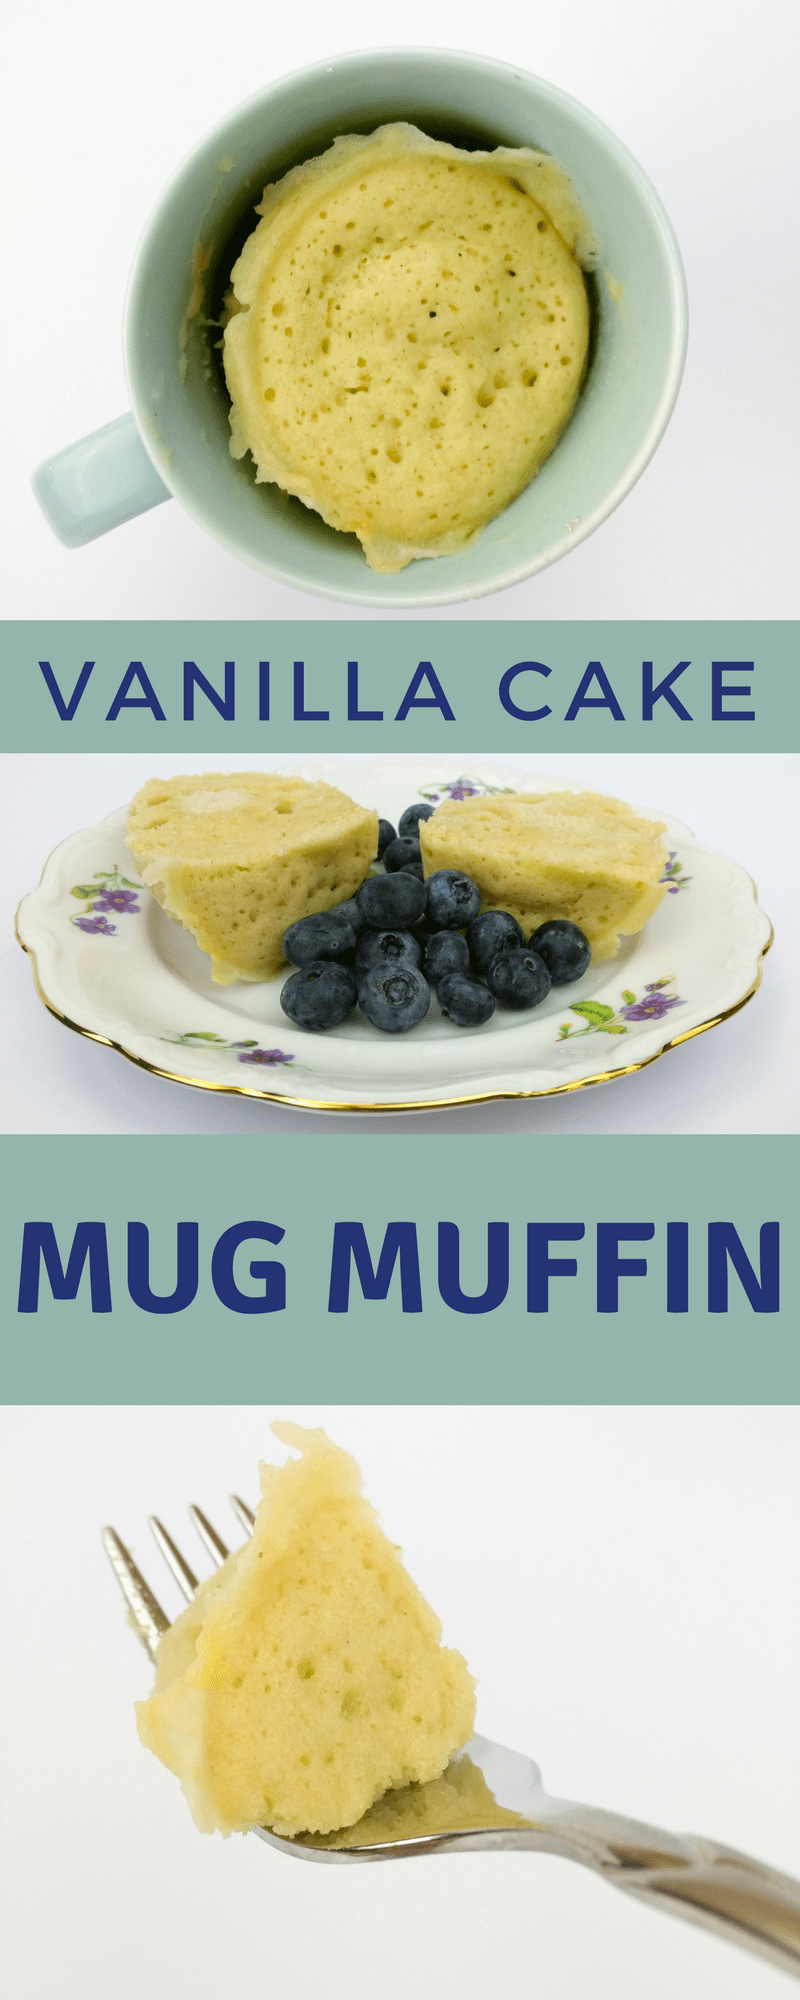 A delicious, lectin free vanilla cake mug muffin from Lectin Free Mama; ready in 2 minutes.